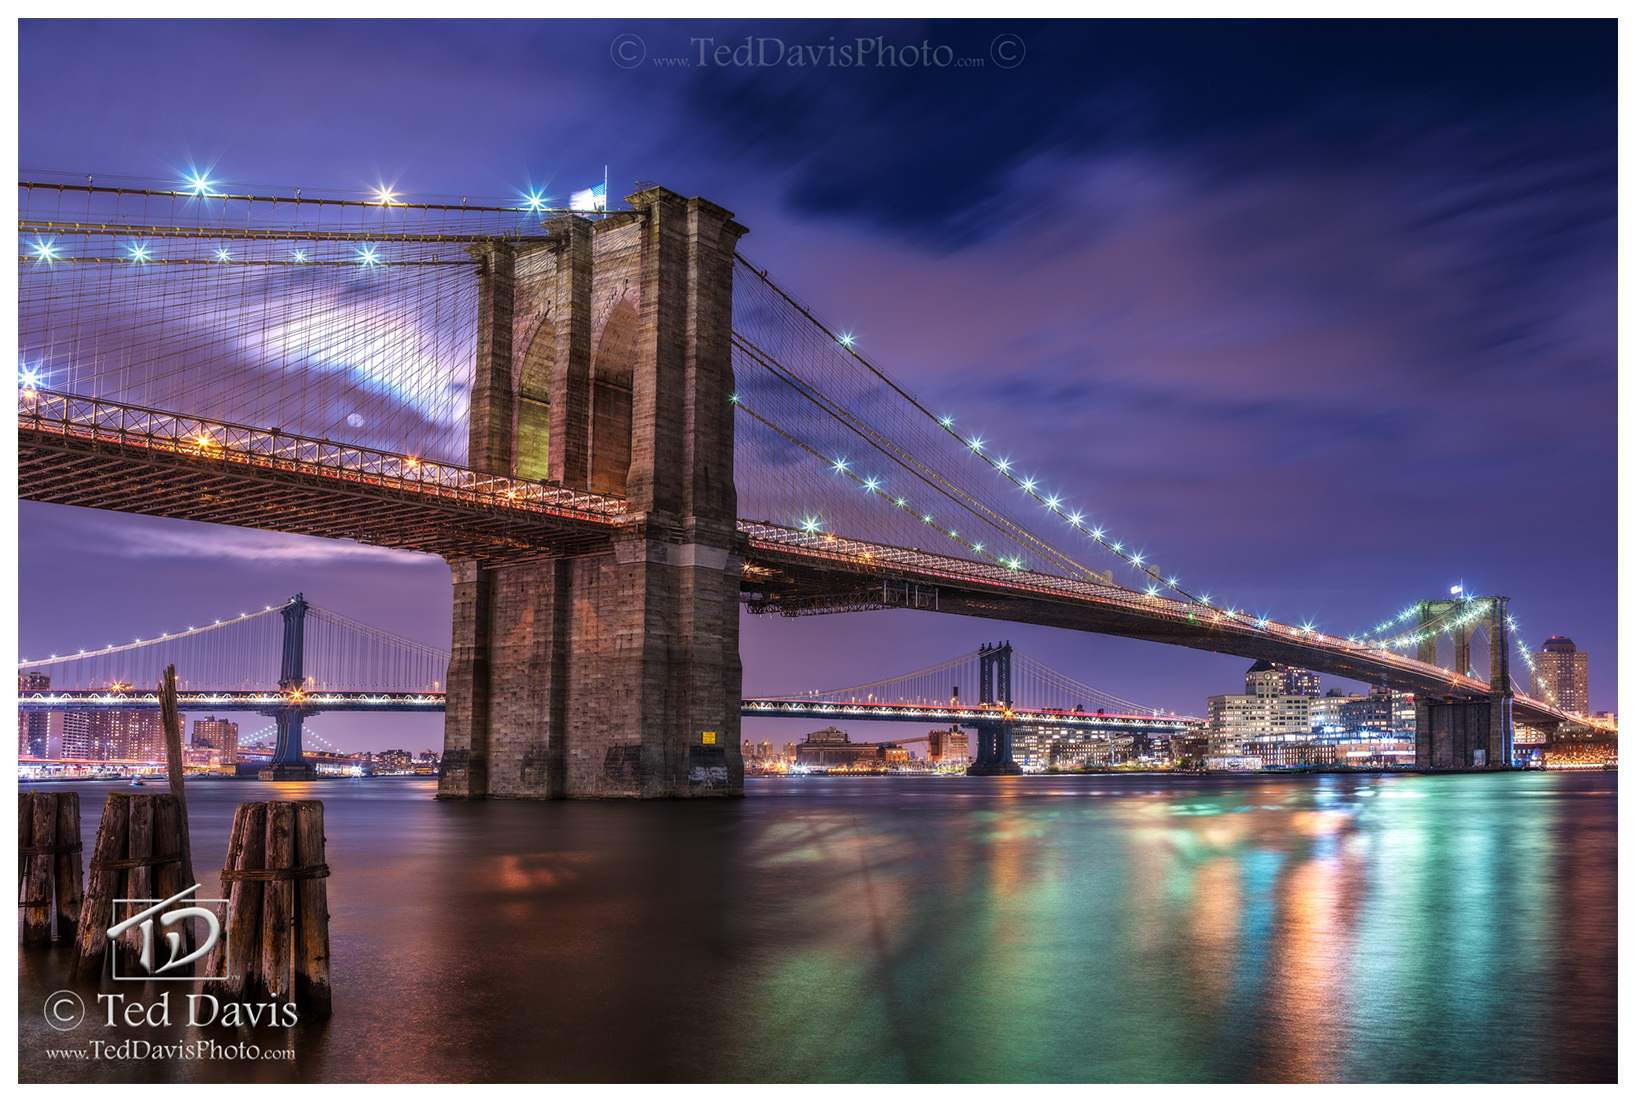 new york, brooklyn, crossings, east, river, bridge, manhattan, ingenuity, full moon, moon, glow